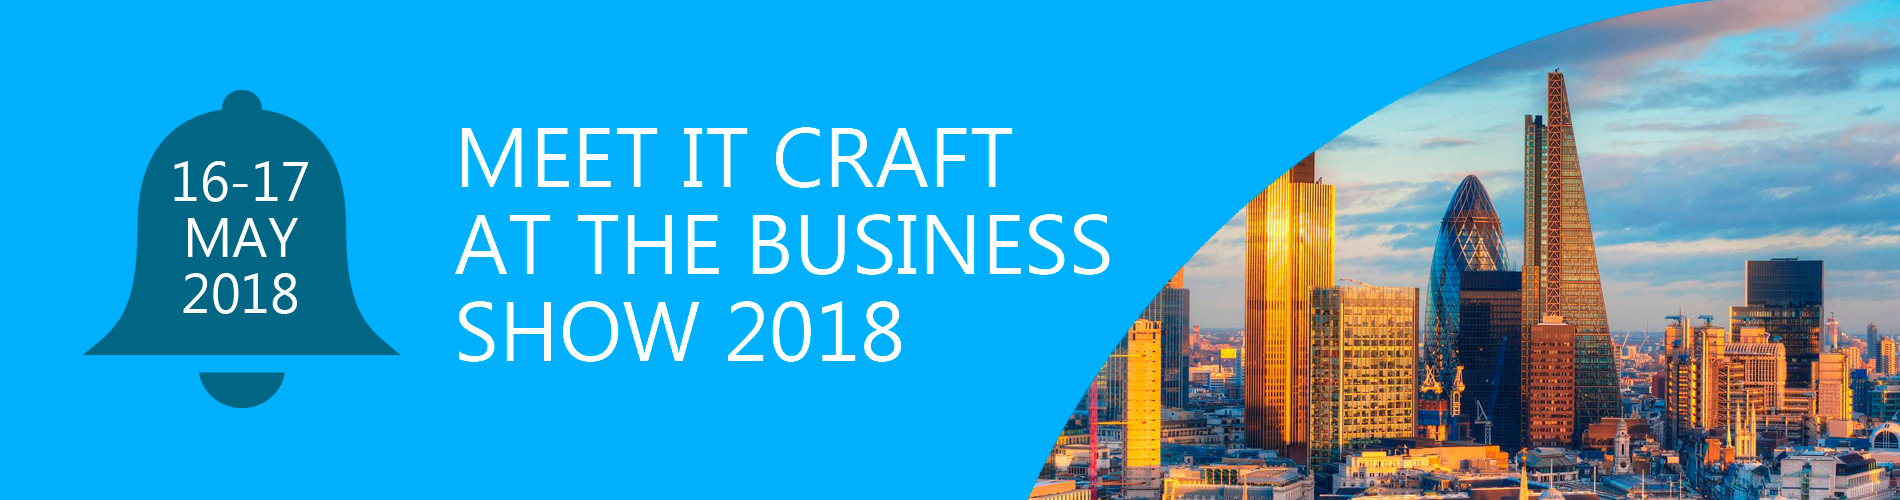 IT Craft at Business Exhibition